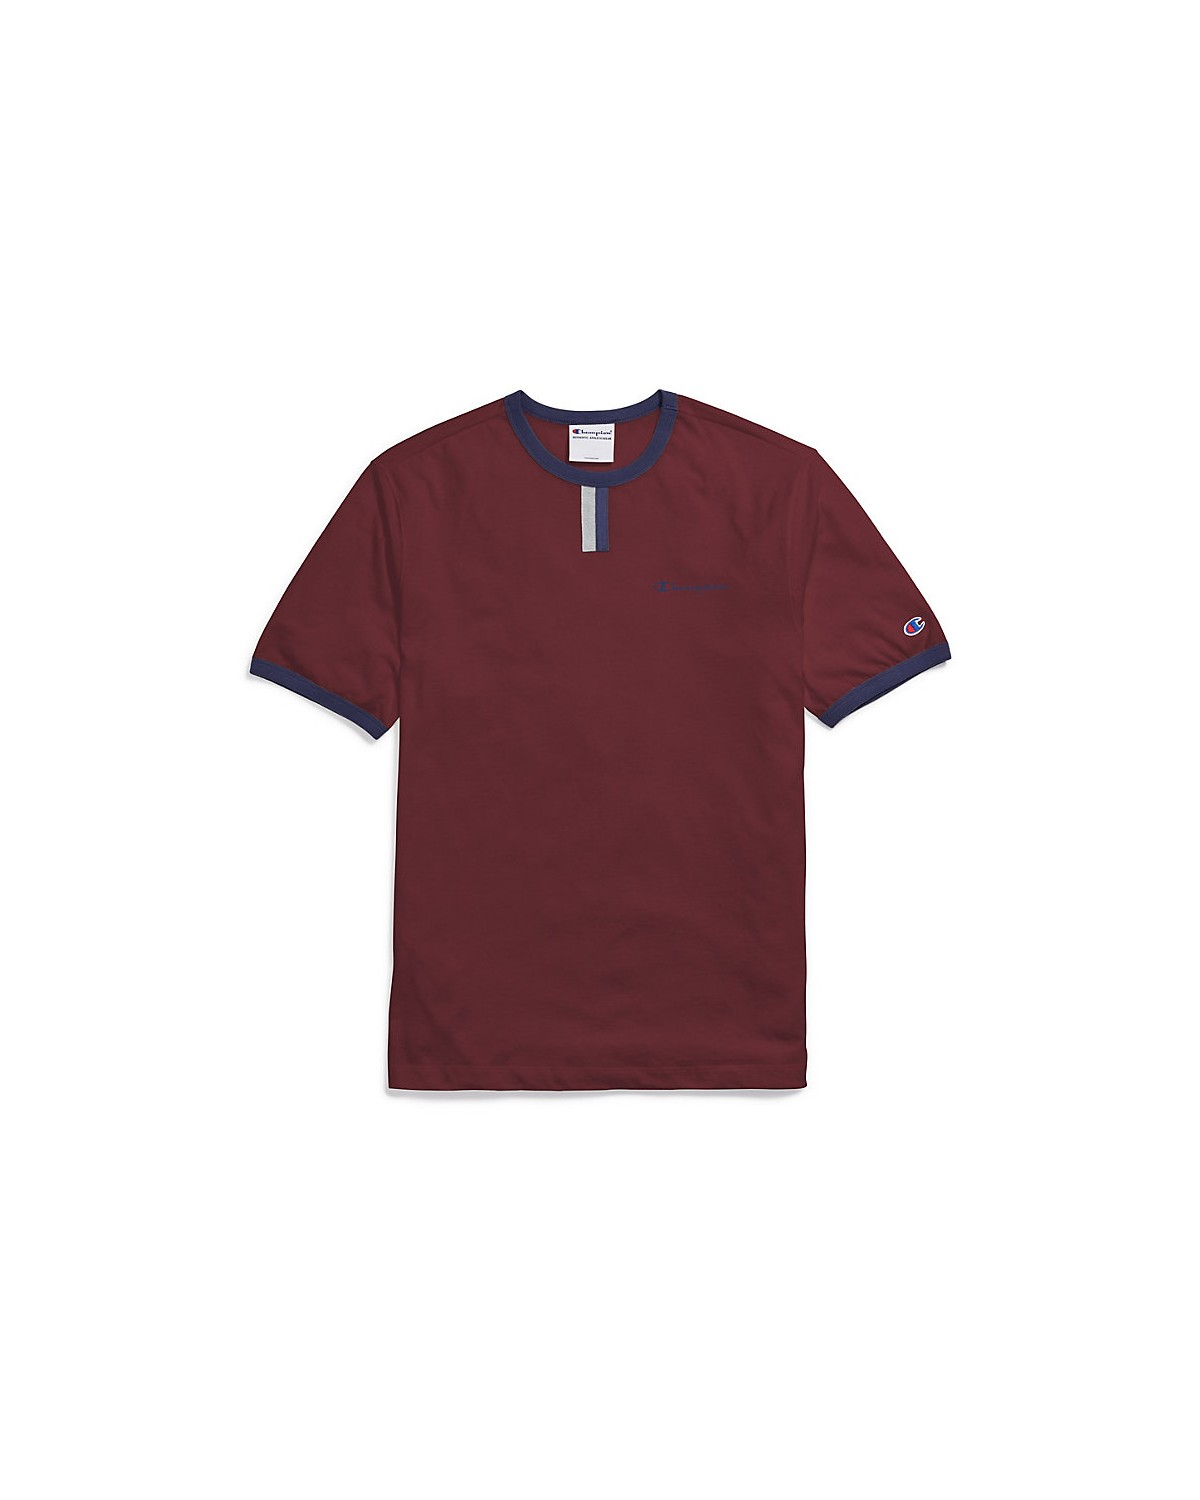 T5050 550031 Champion Maroon/Oxford Grey/Imperial Indigo